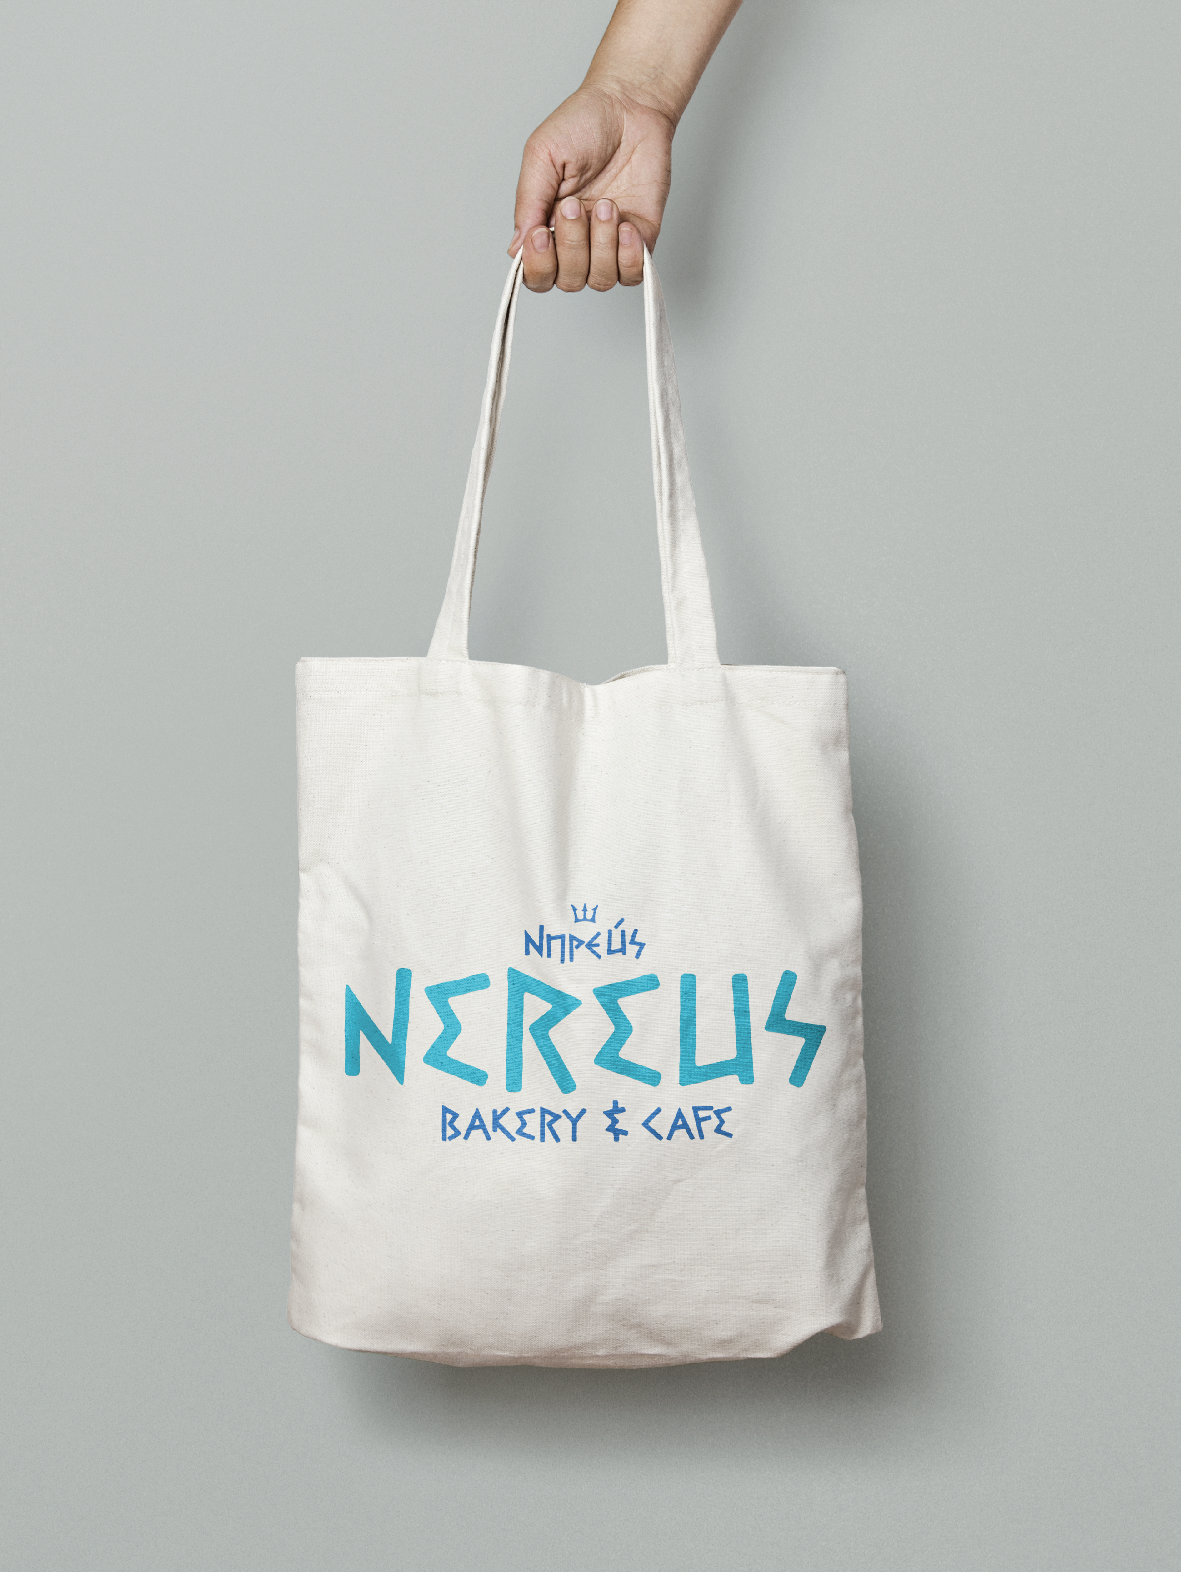 Nereus Bakery & Cafe